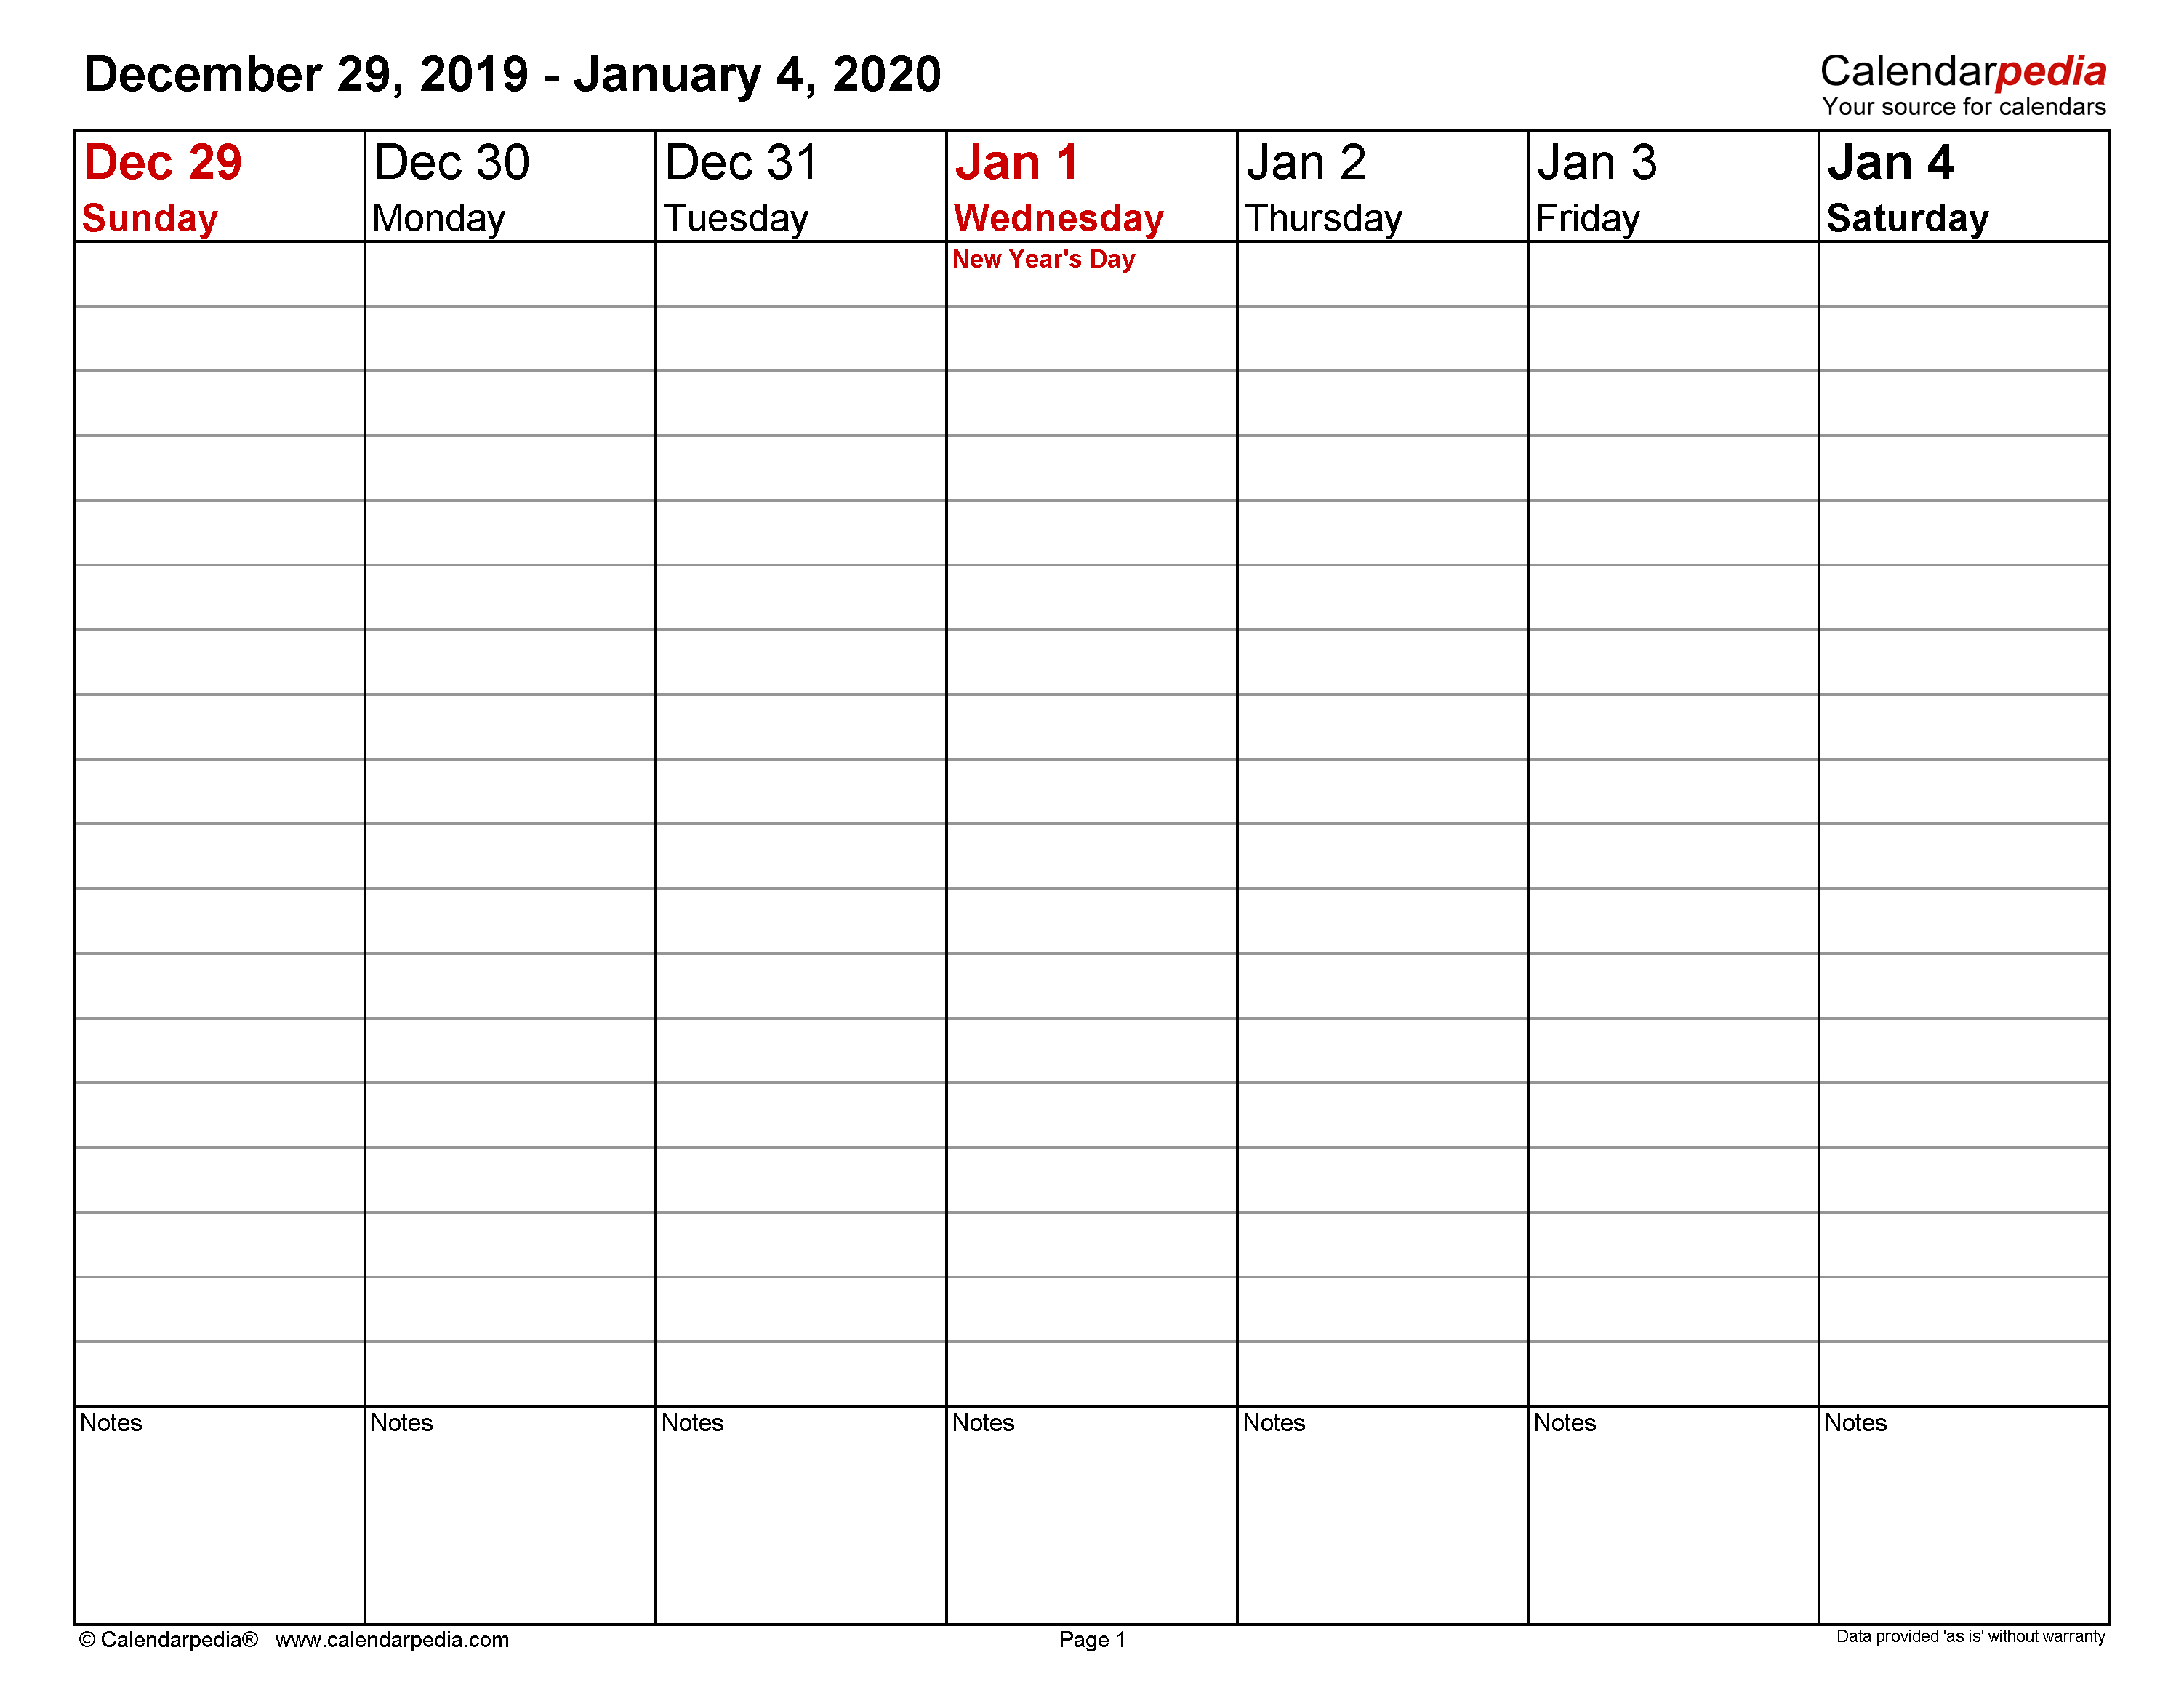 Weekly Calendars 2020 For Word - 12 Free Printable Templates within Print Free 2020 Calendar Without Downloading Weekly Writing